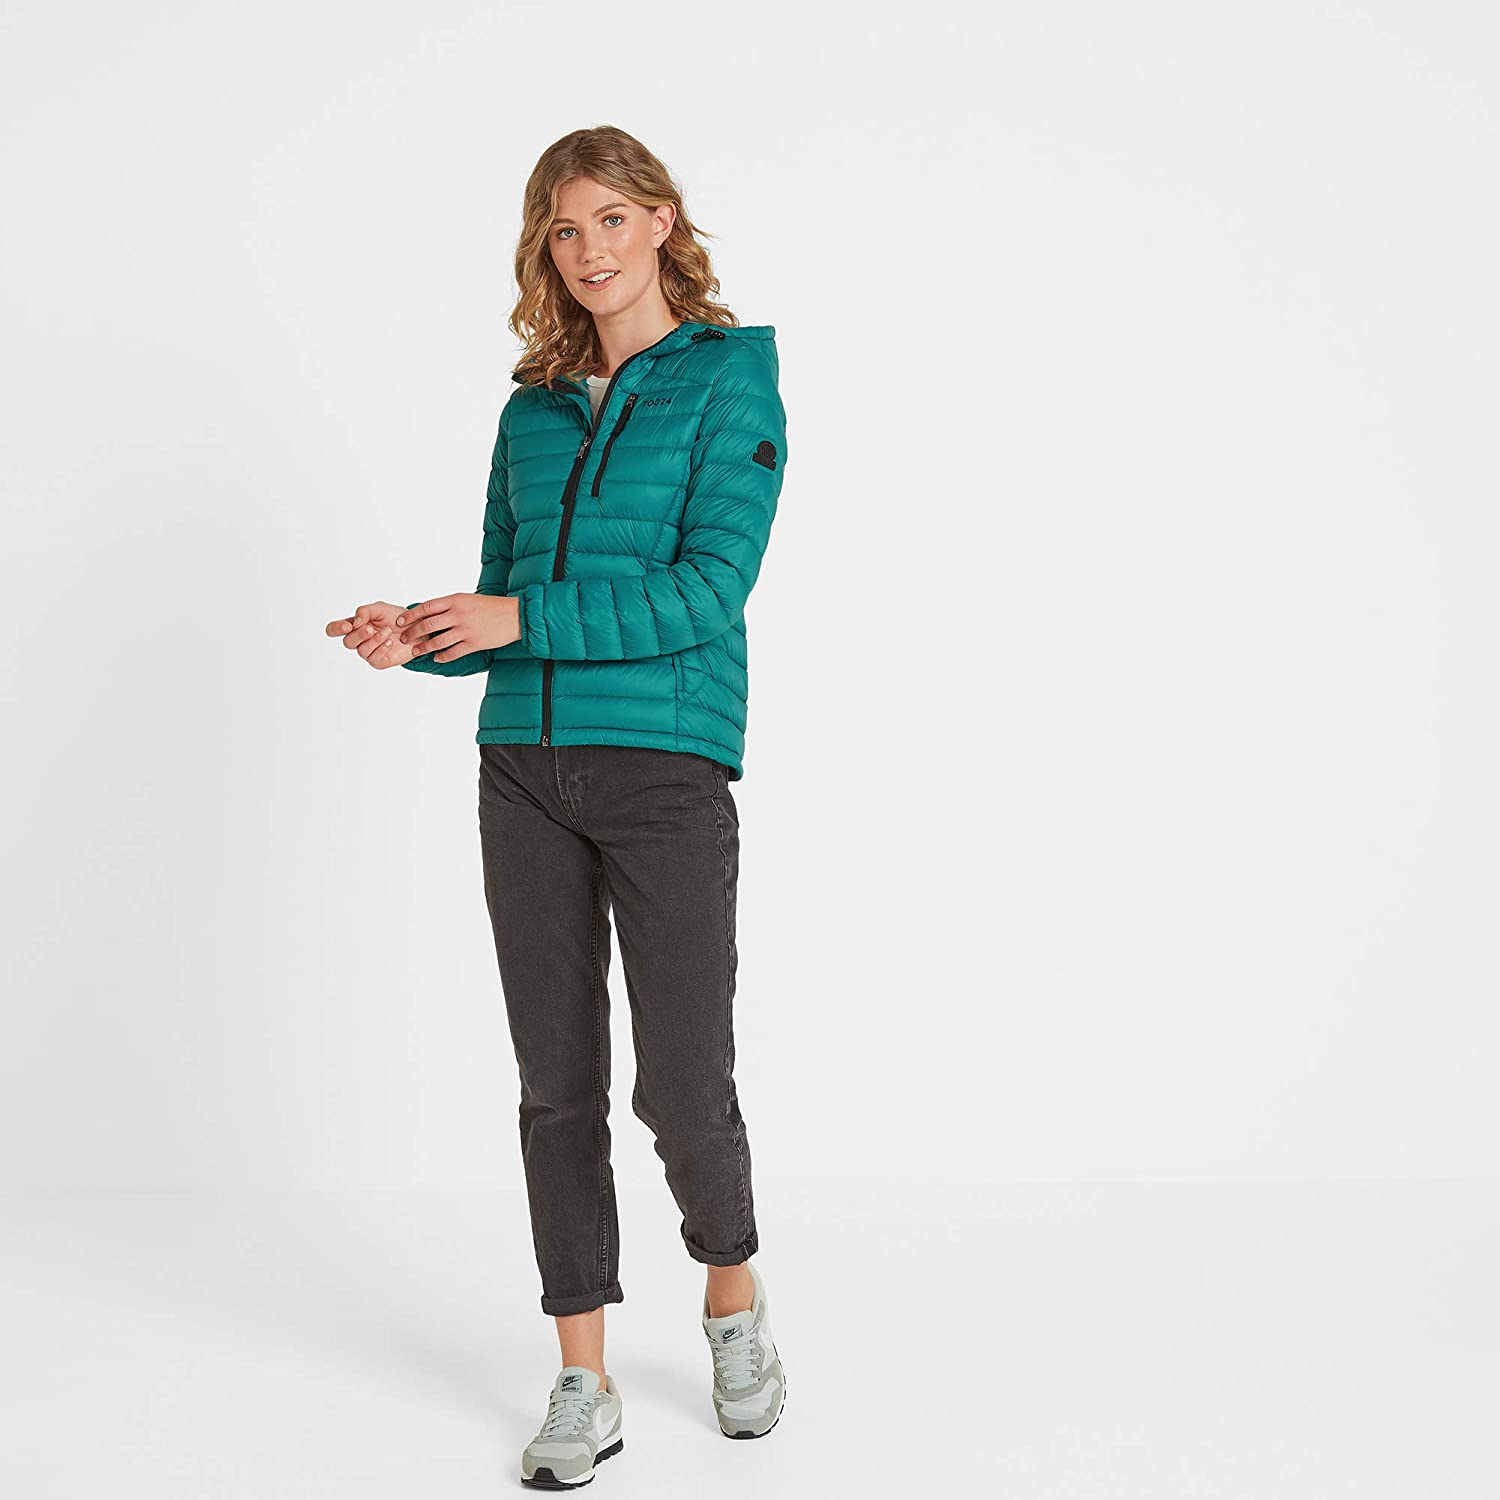 Breathable Ultra Warm 90/% Duck Down 800 Fill Power 10/% Feather Filling Packable Design TOG 24 Drax Womens Lightweight Hooded Down Jacket Bulk Free Casual Outer or Mid Layer Coat Multiple Pockets